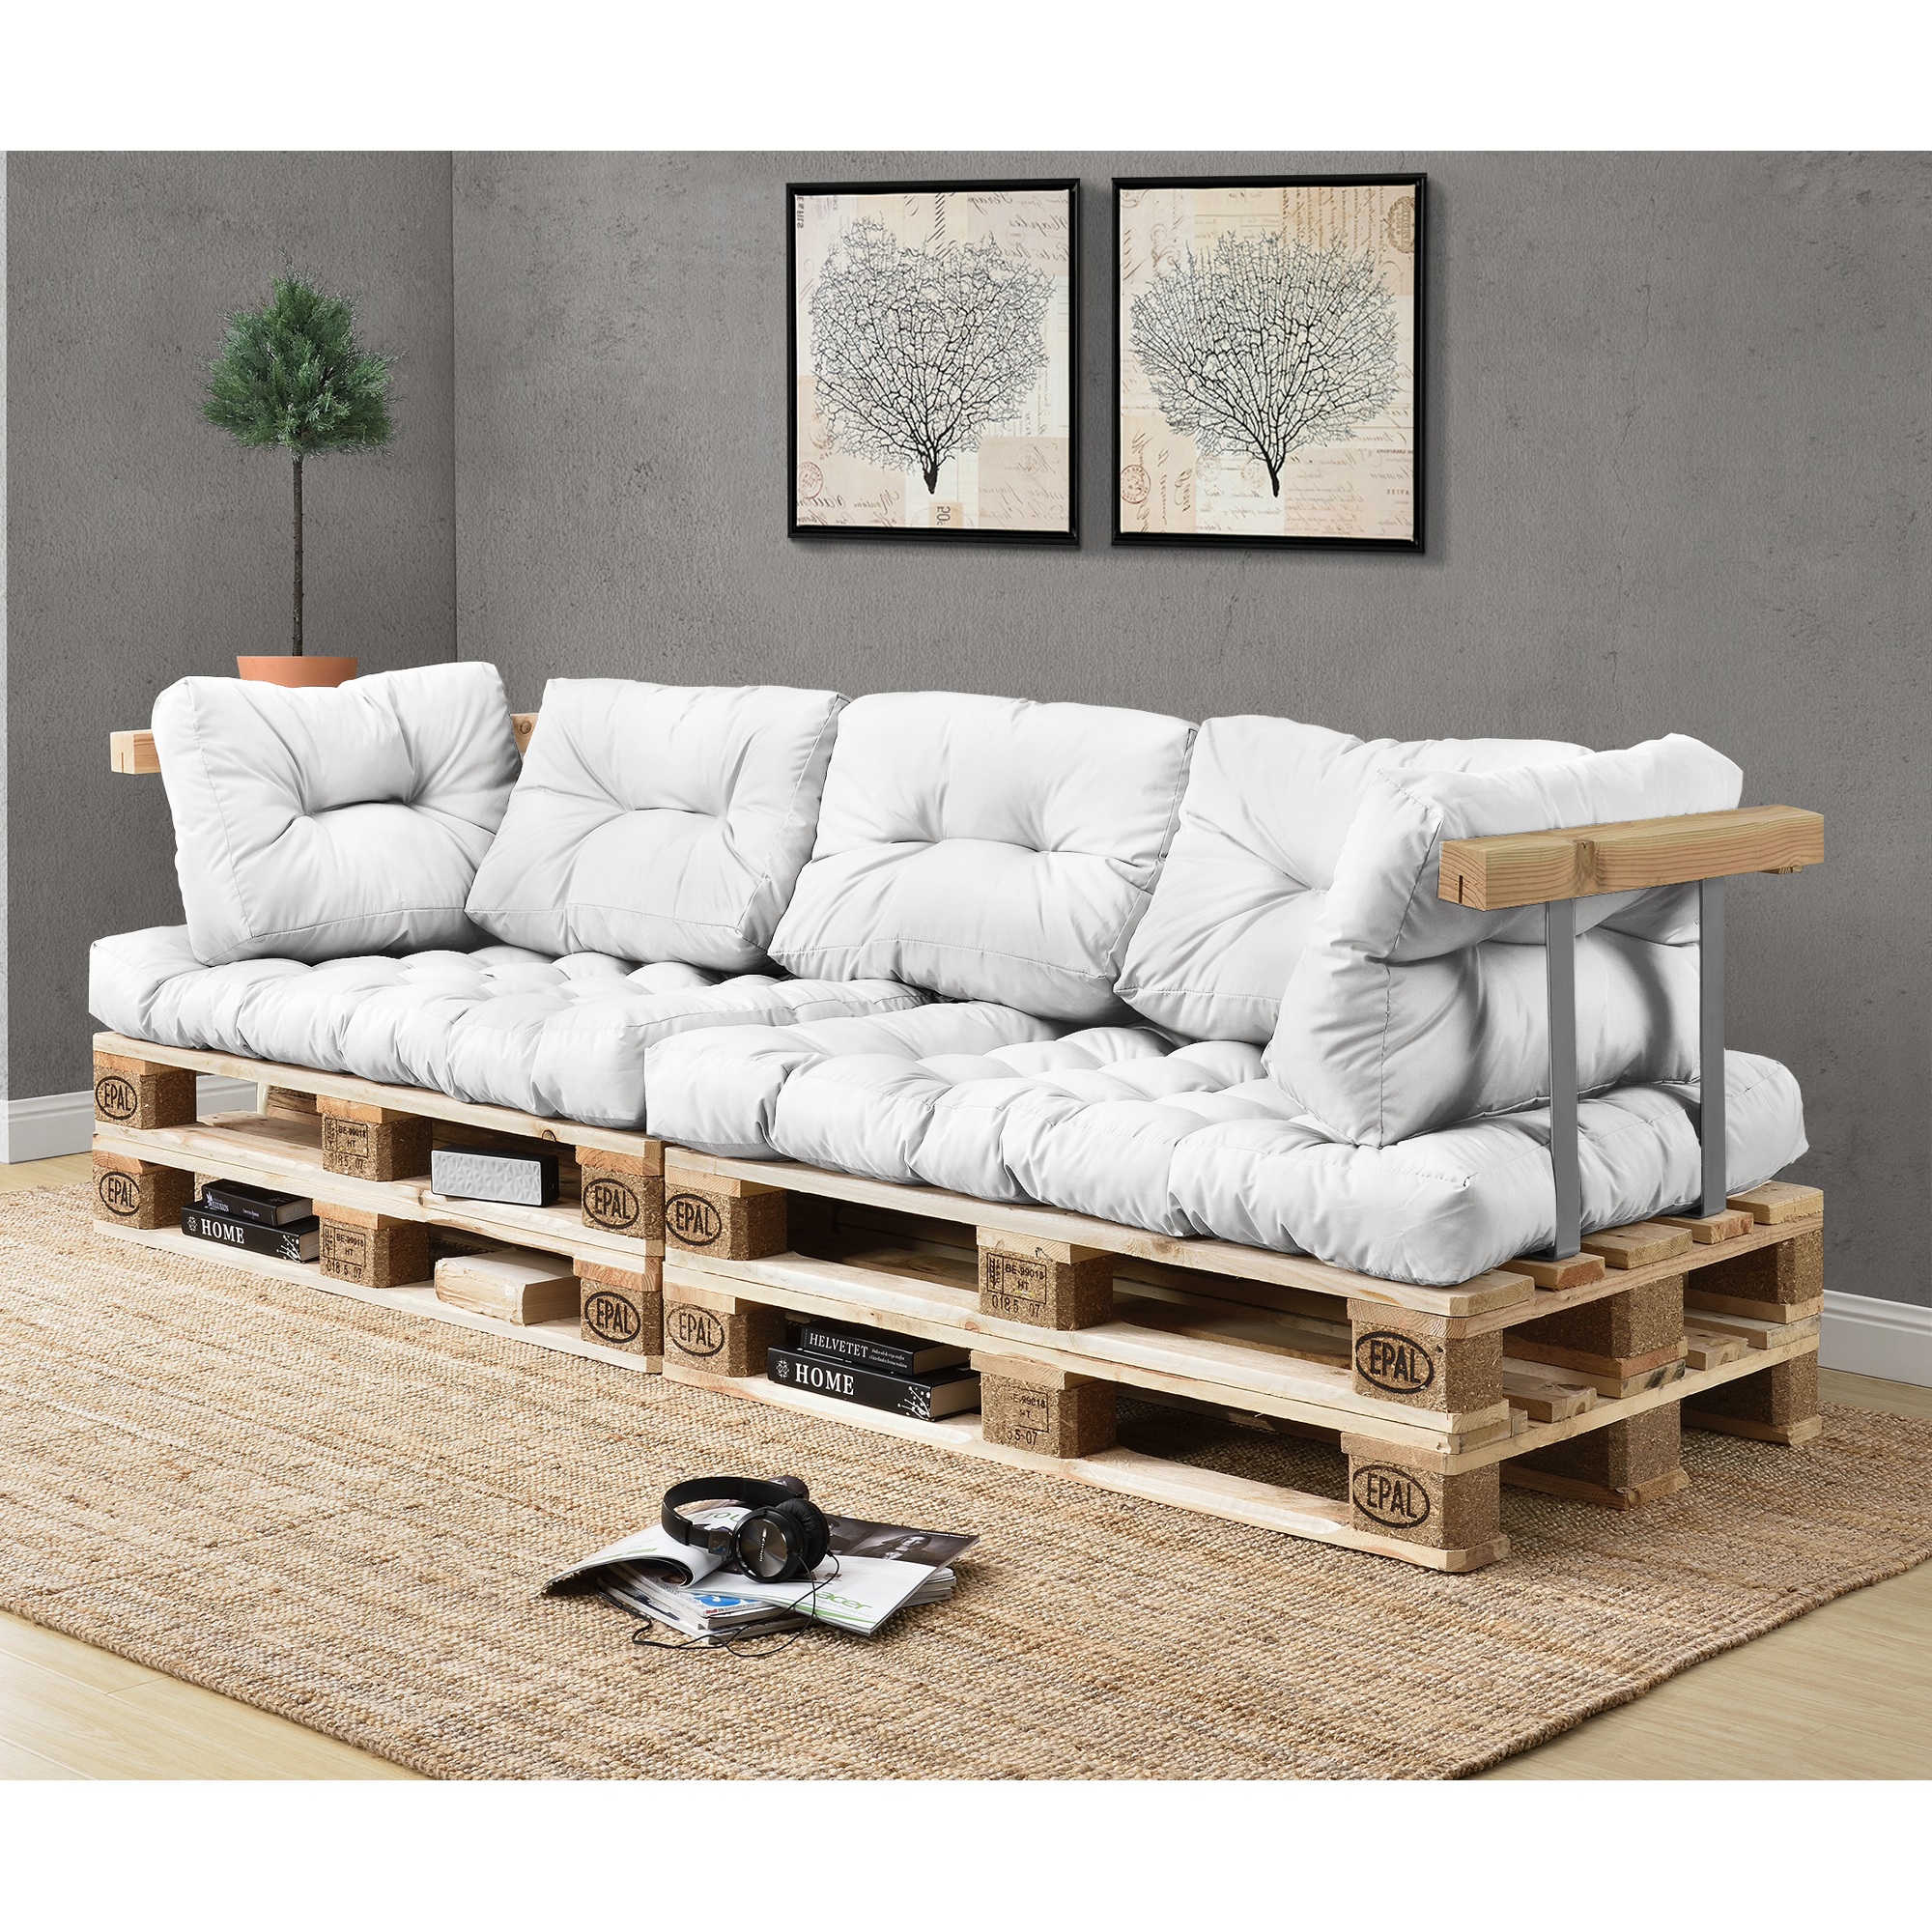 divano pallet bianco design casa creativa e mobili ispiratori. Black Bedroom Furniture Sets. Home Design Ideas